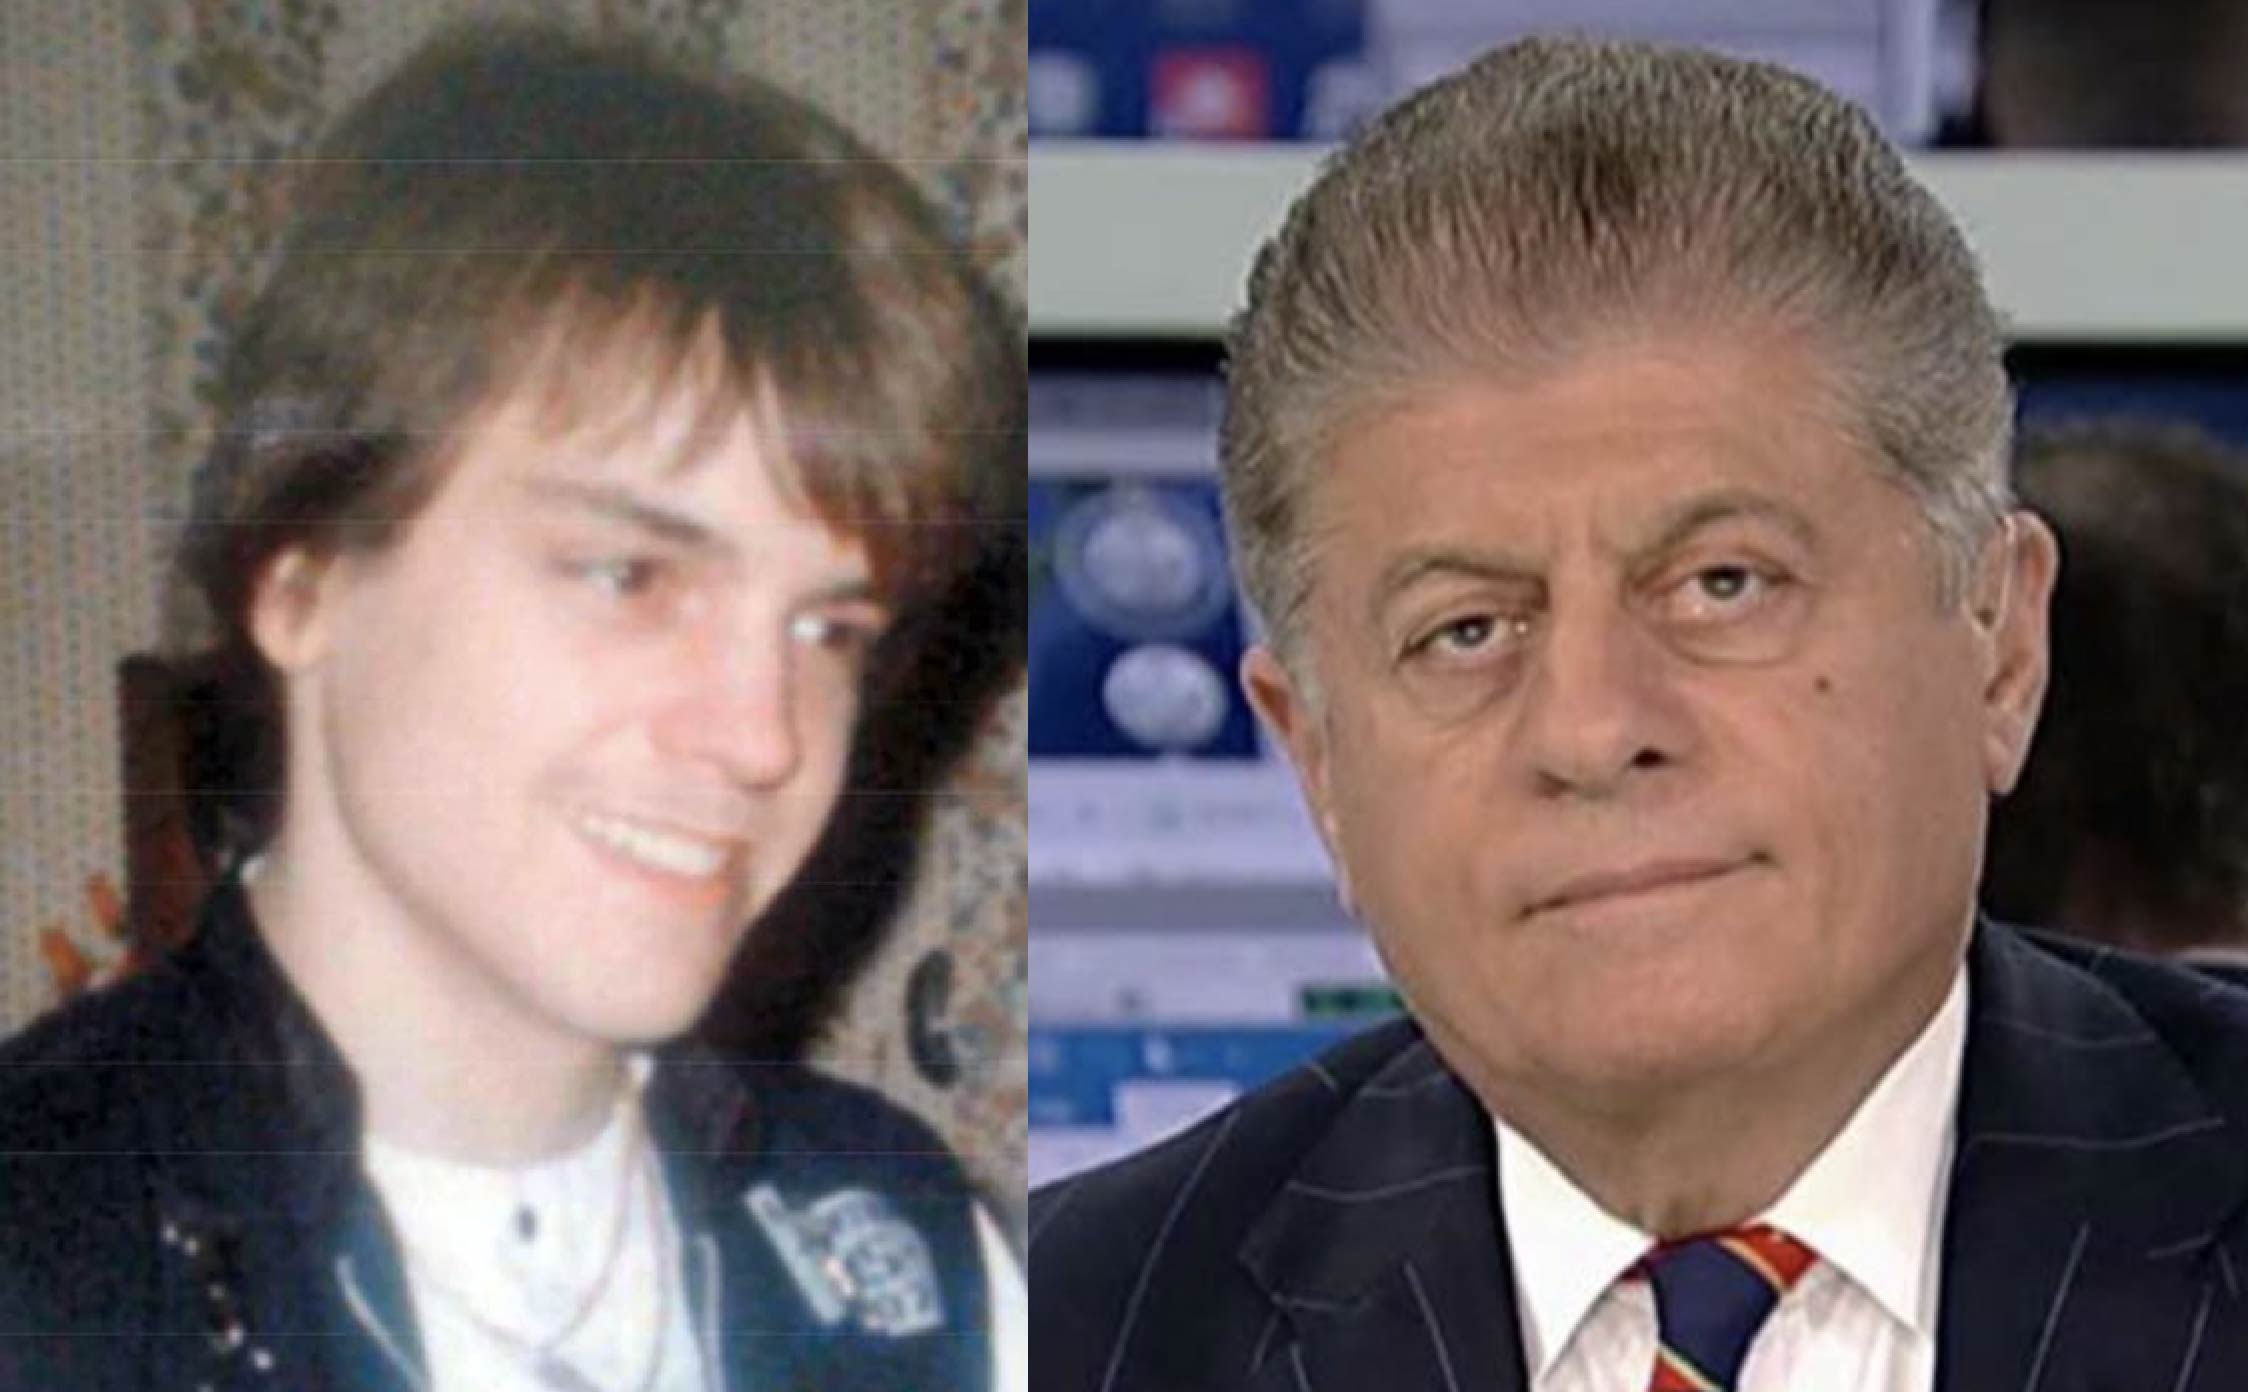 Trump-Hater Judge Napolitano Accused of Sexually Abusing Young Man in the 80s